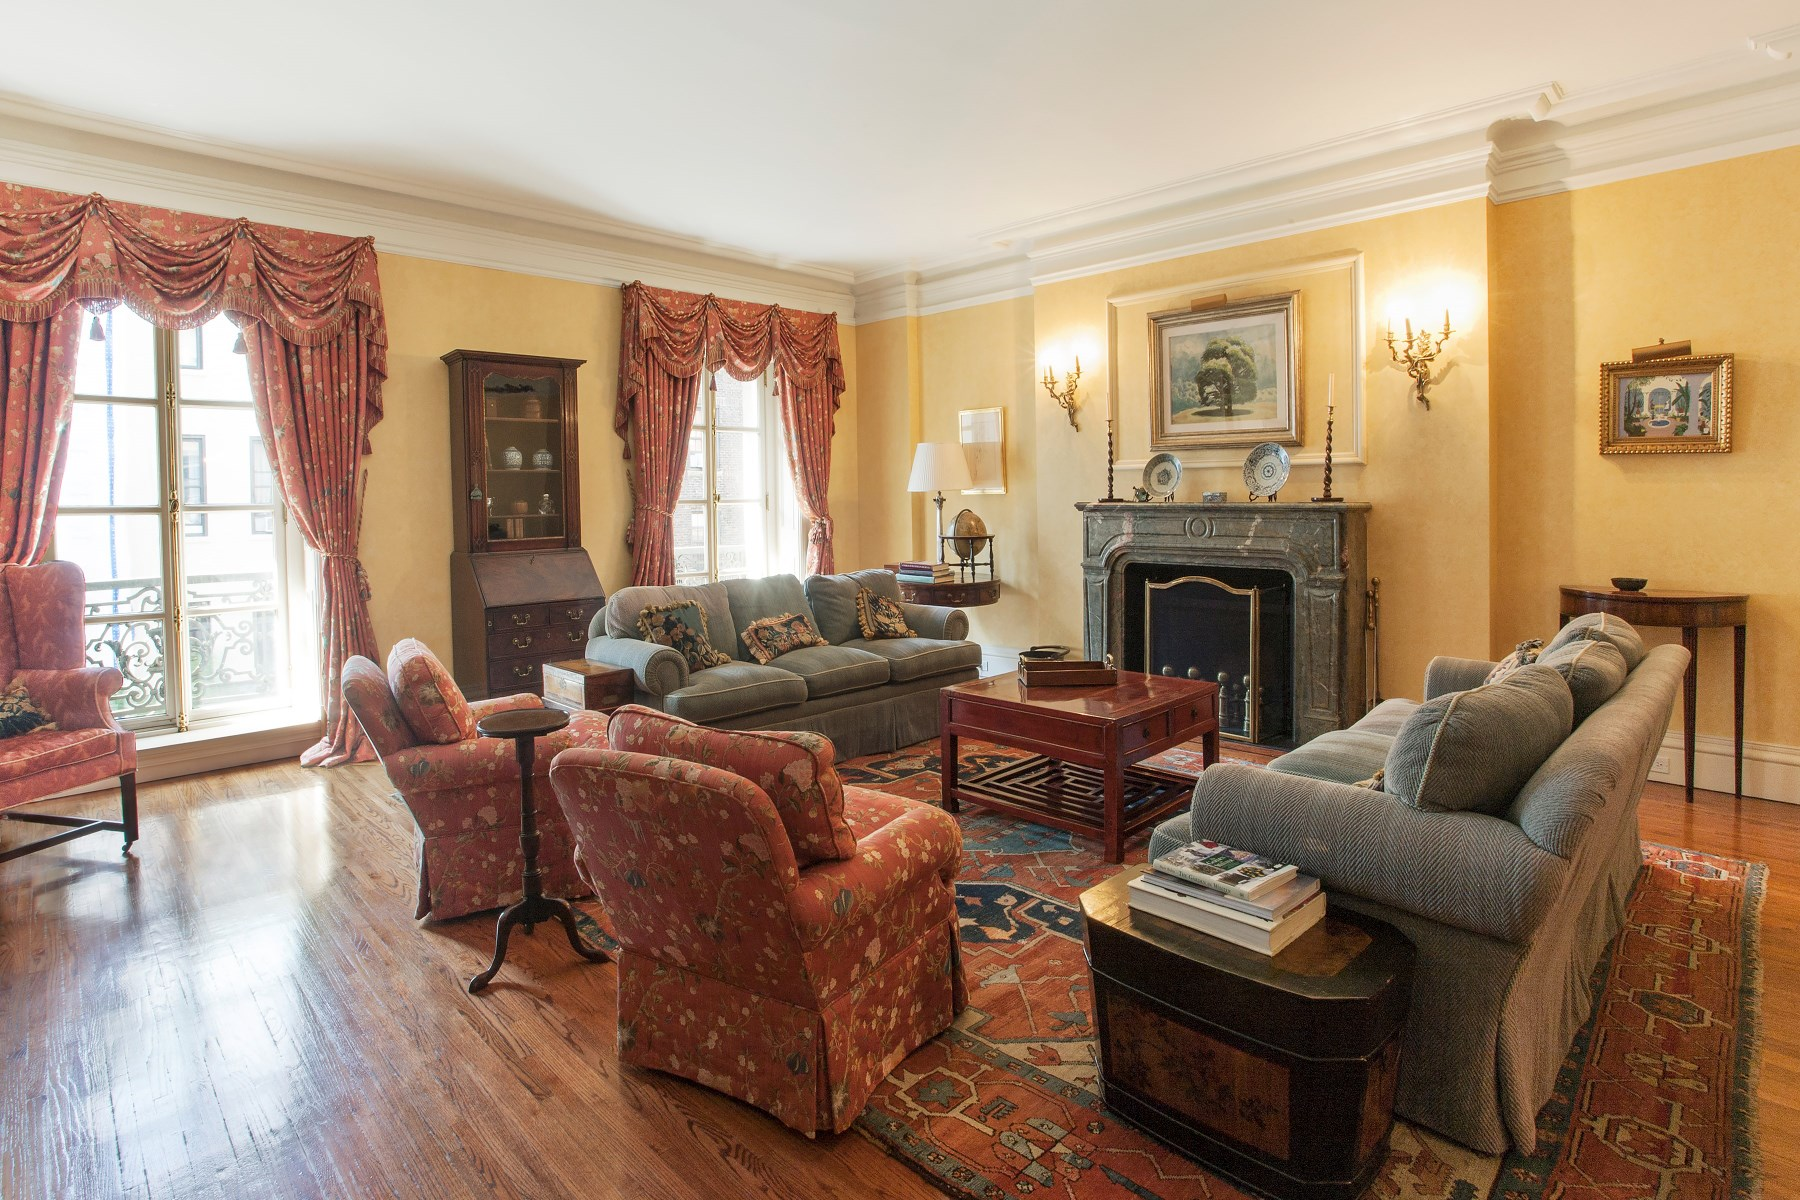 Co-op for Sale at Mansion Duplex Steps from the Park 35 East 68th Street Apt 3/4 Upper East Side, New York, New York, 10065 United States